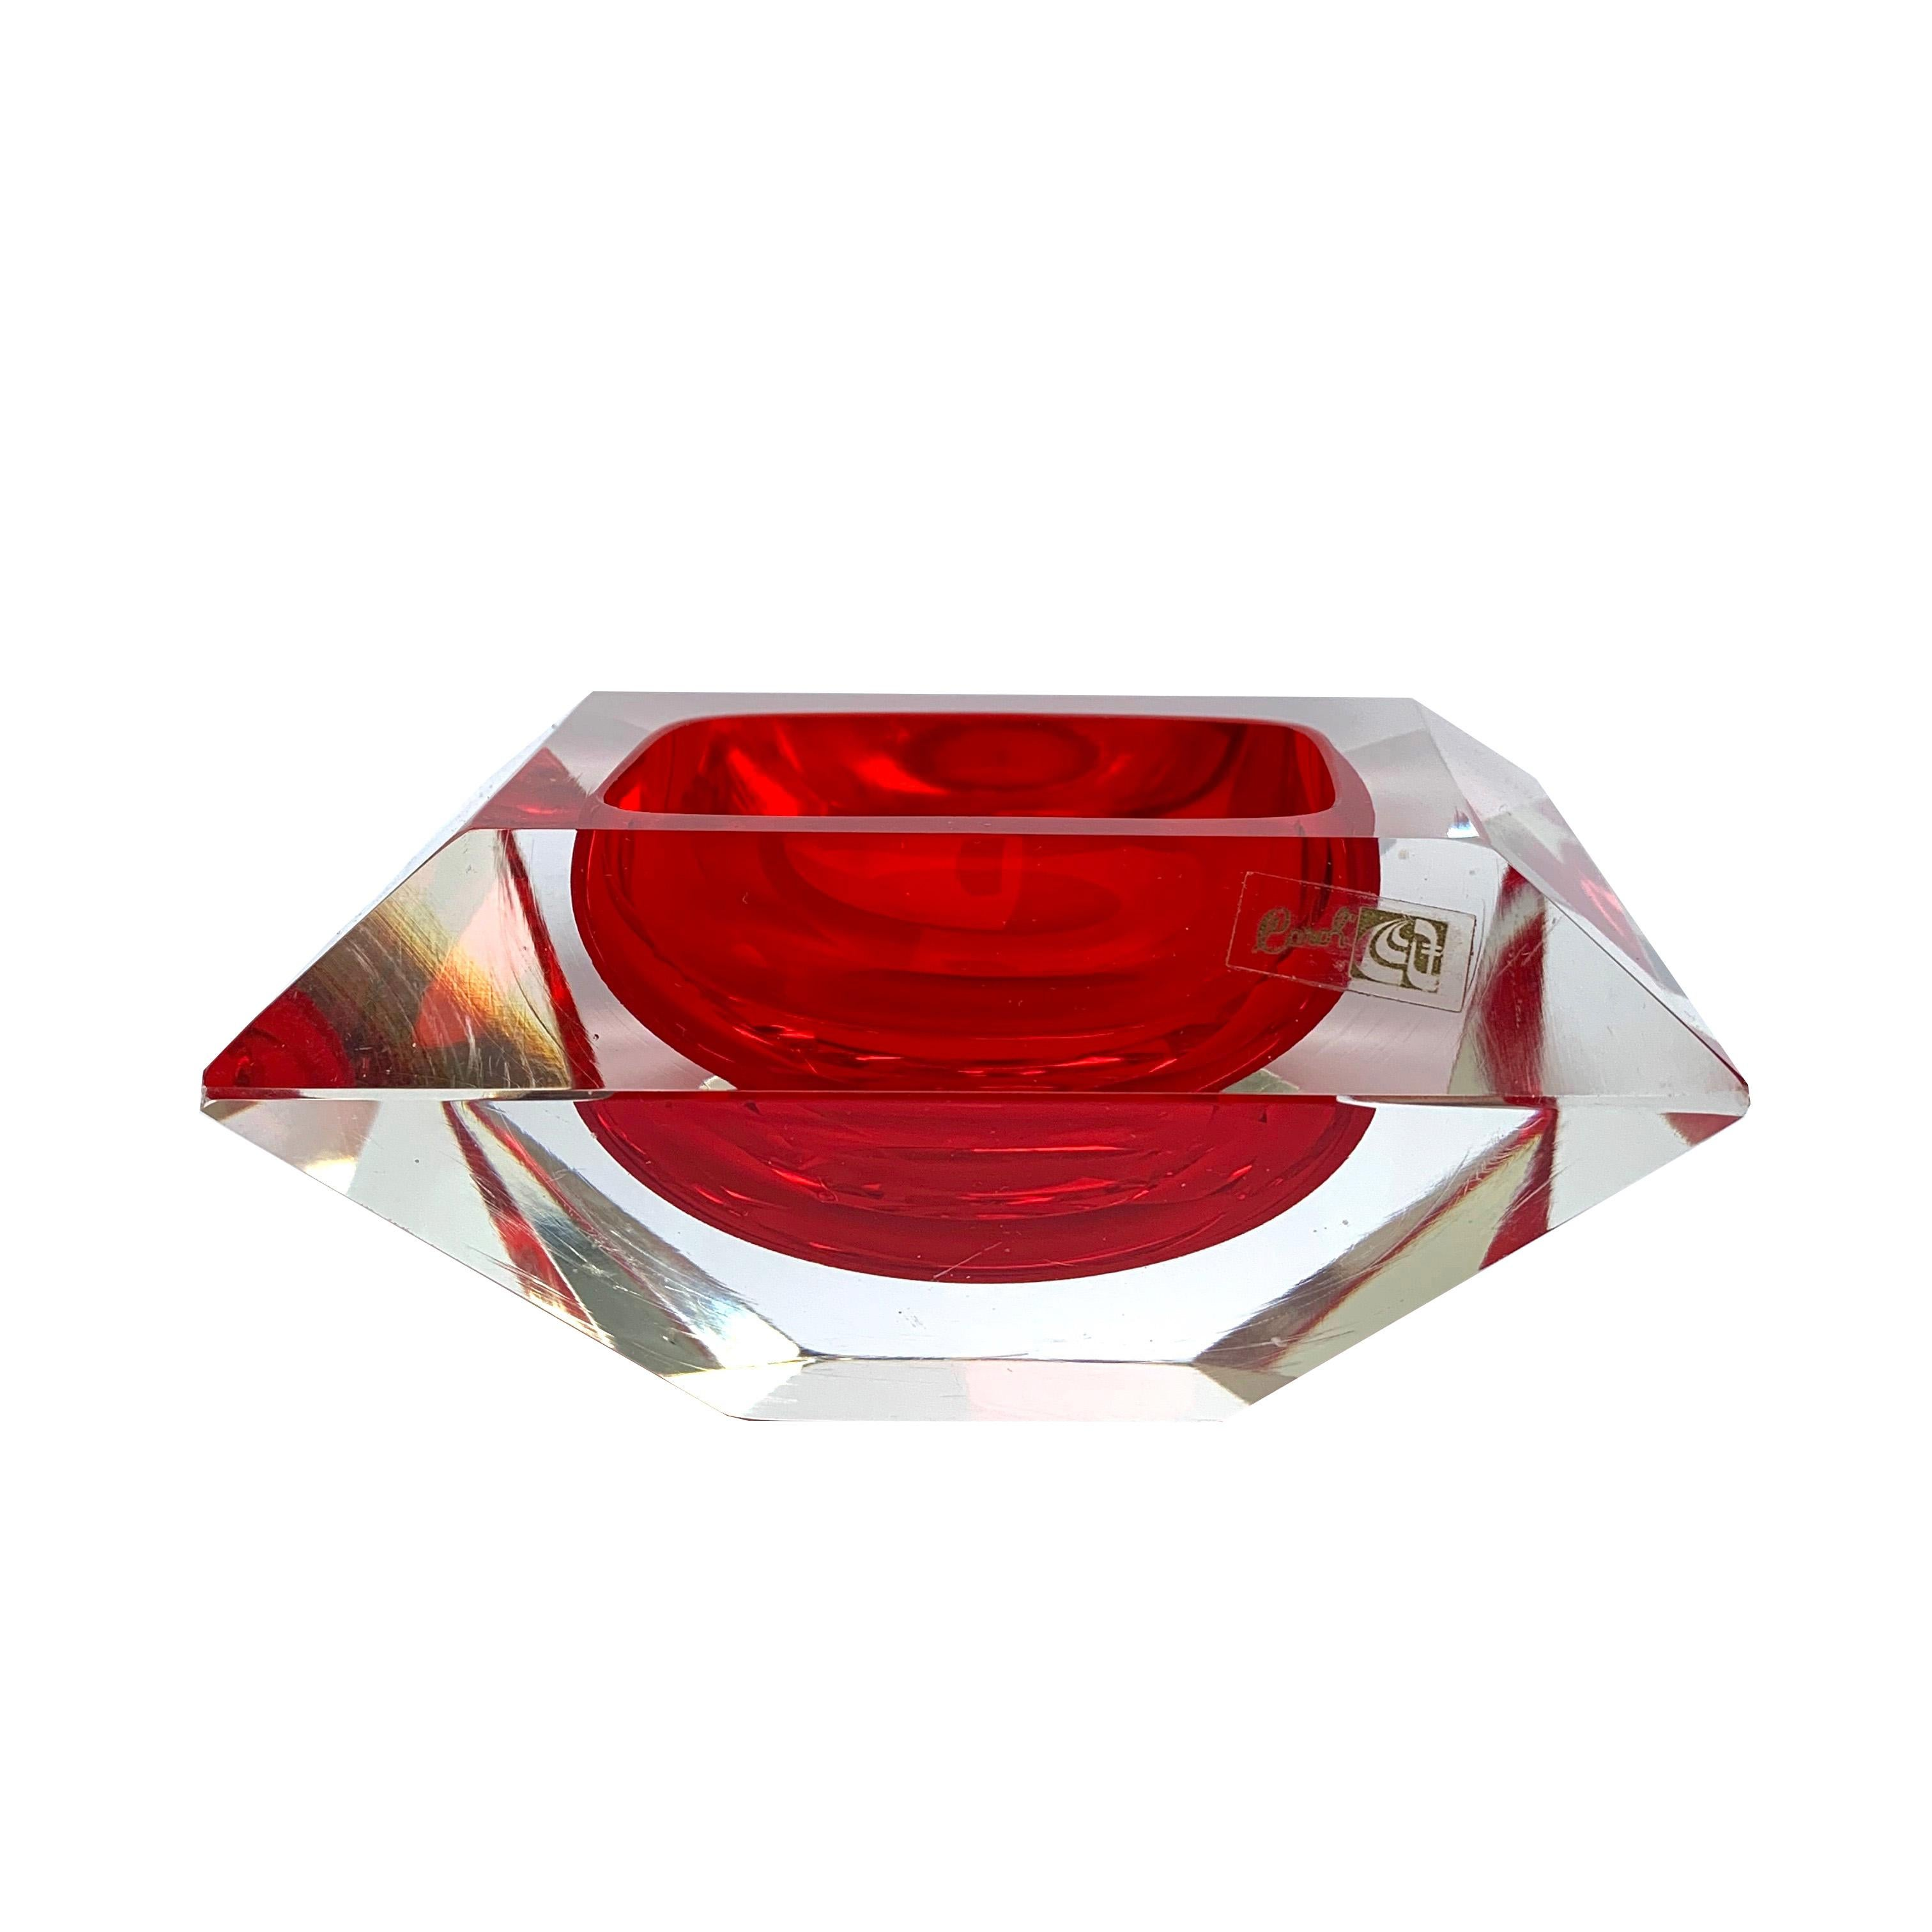 Murano bowl, Flavio Poli, submerged glass. Cut and ruby color, Italy, 50s